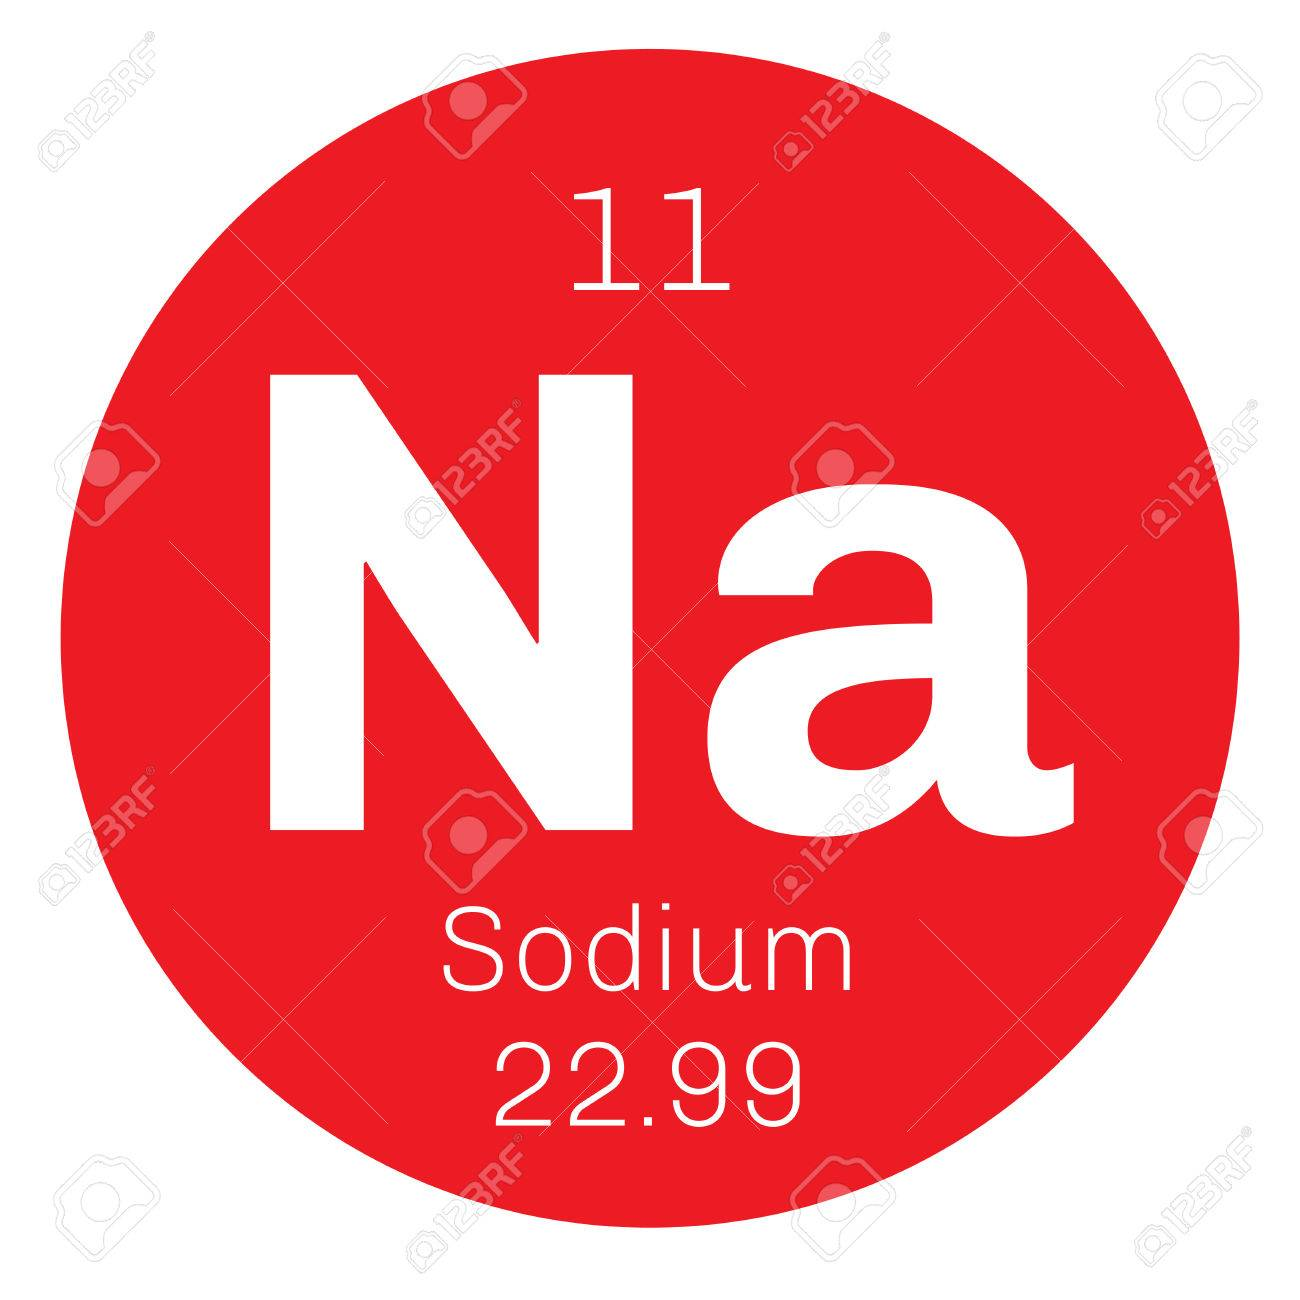 Sodium abbreviation periodic table gallery periodic table images silver abbreviation periodic table images periodic table images periodic table of elements silver gallery periodic table gamestrikefo Images